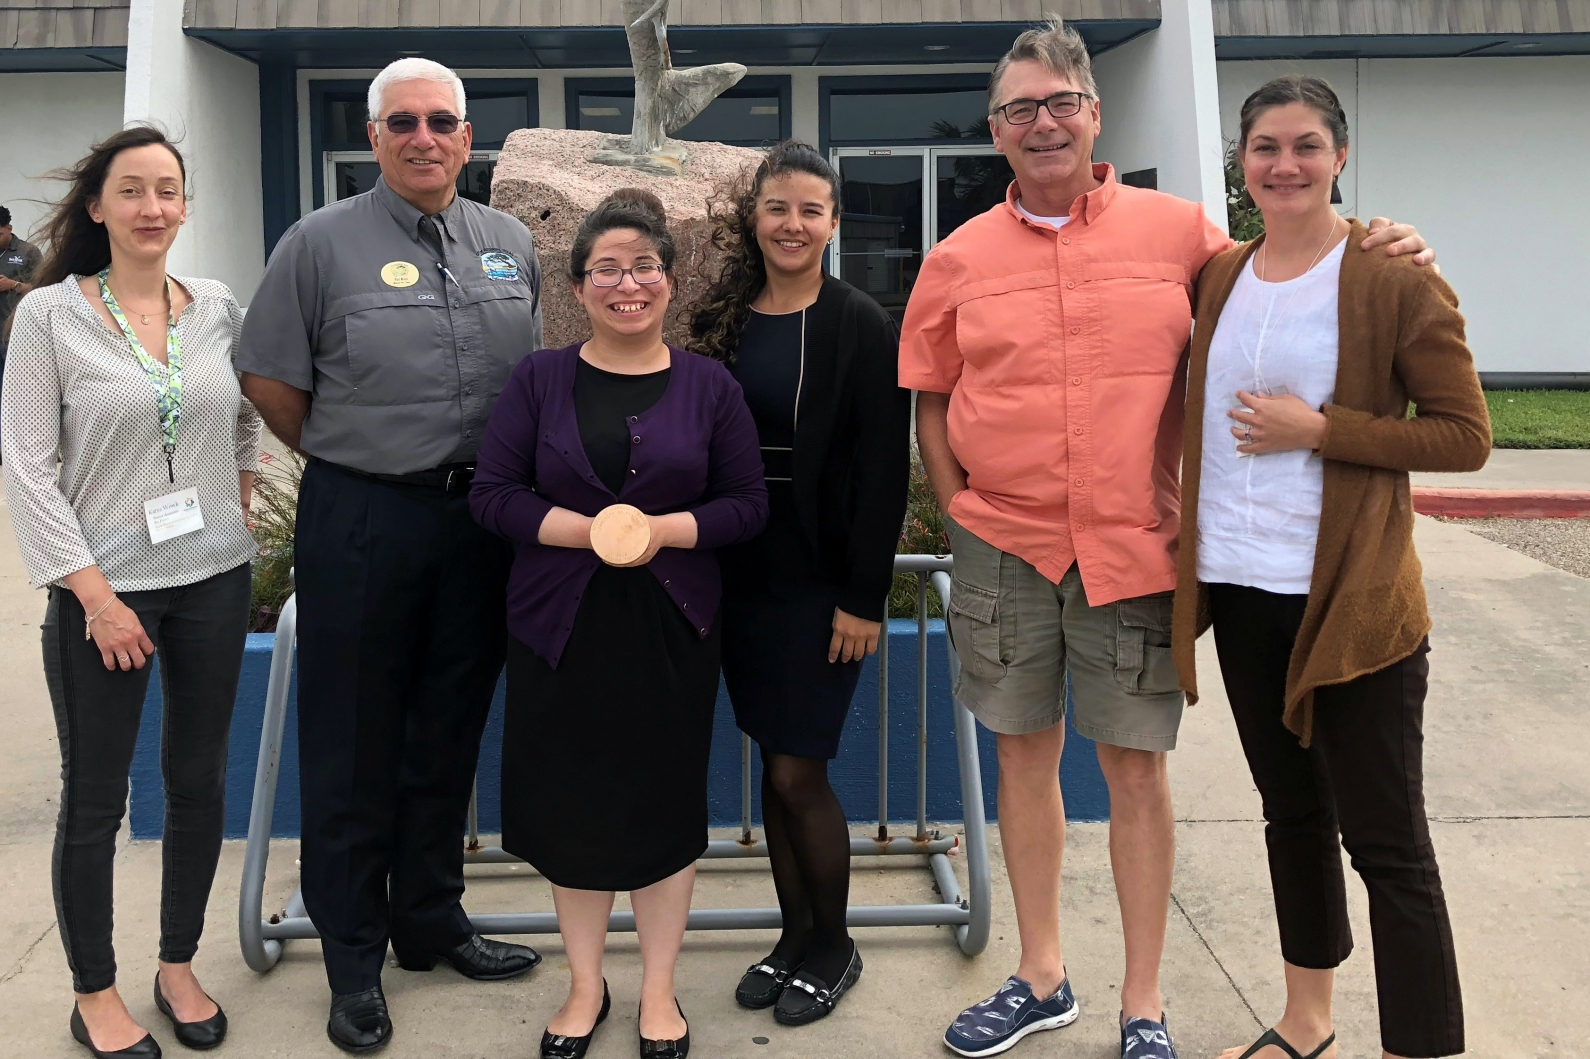 Rockport Community Planner Amanda Torres, third from left, accepts the Spirit of Community Award recently during the Gulf of Mexico Climate and Resilience Community of Practice's annual meeting in Port Aransas, Texas.